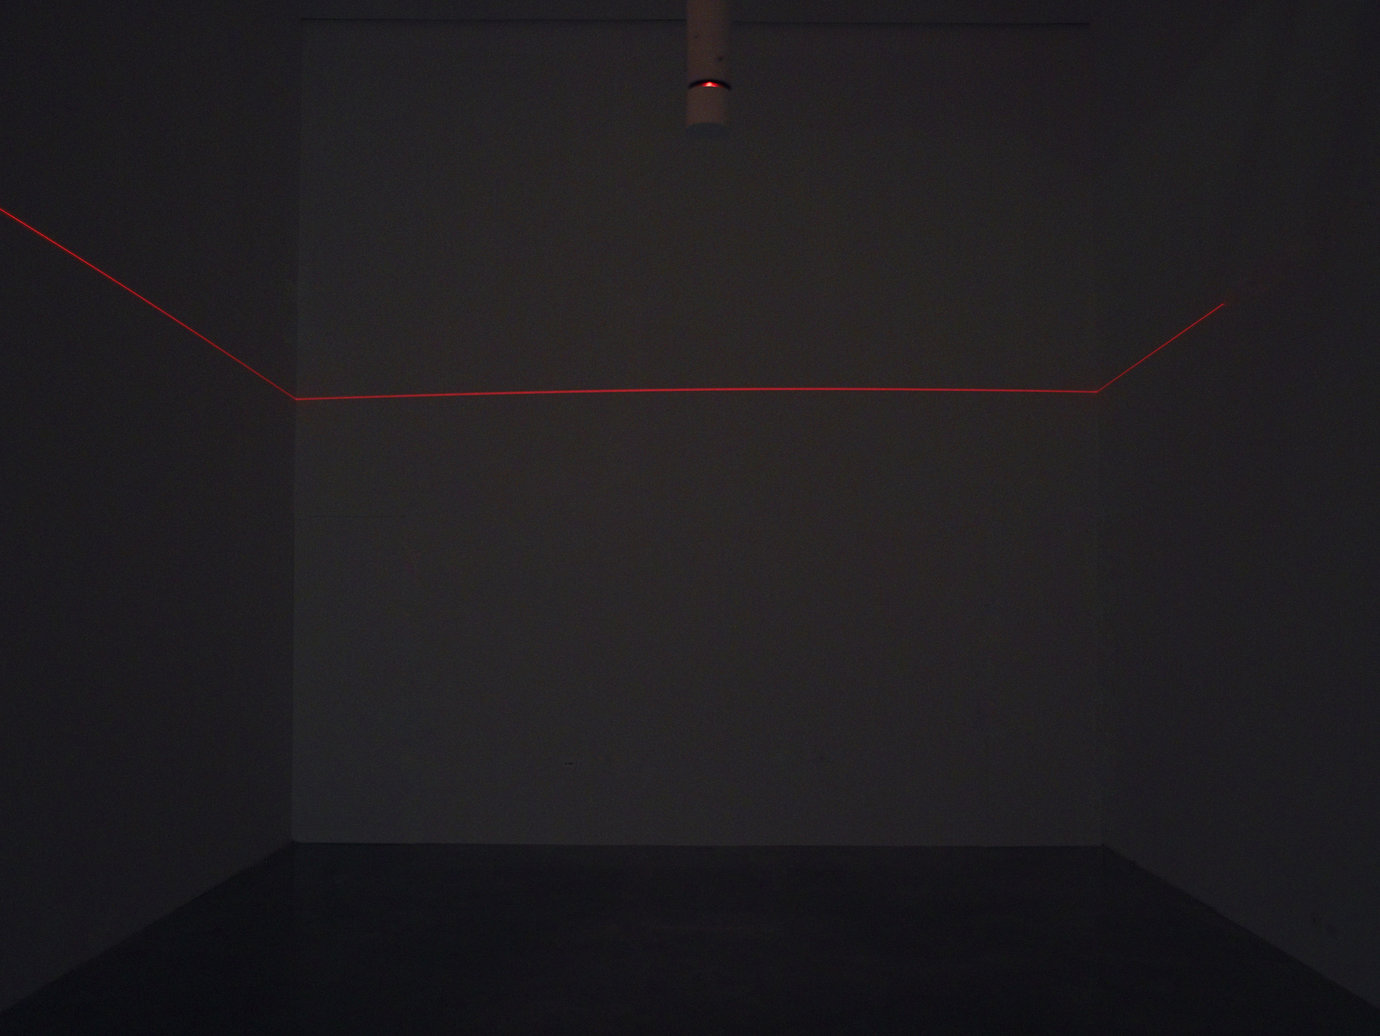 , 1967. laser projection, installation dimensions variable.